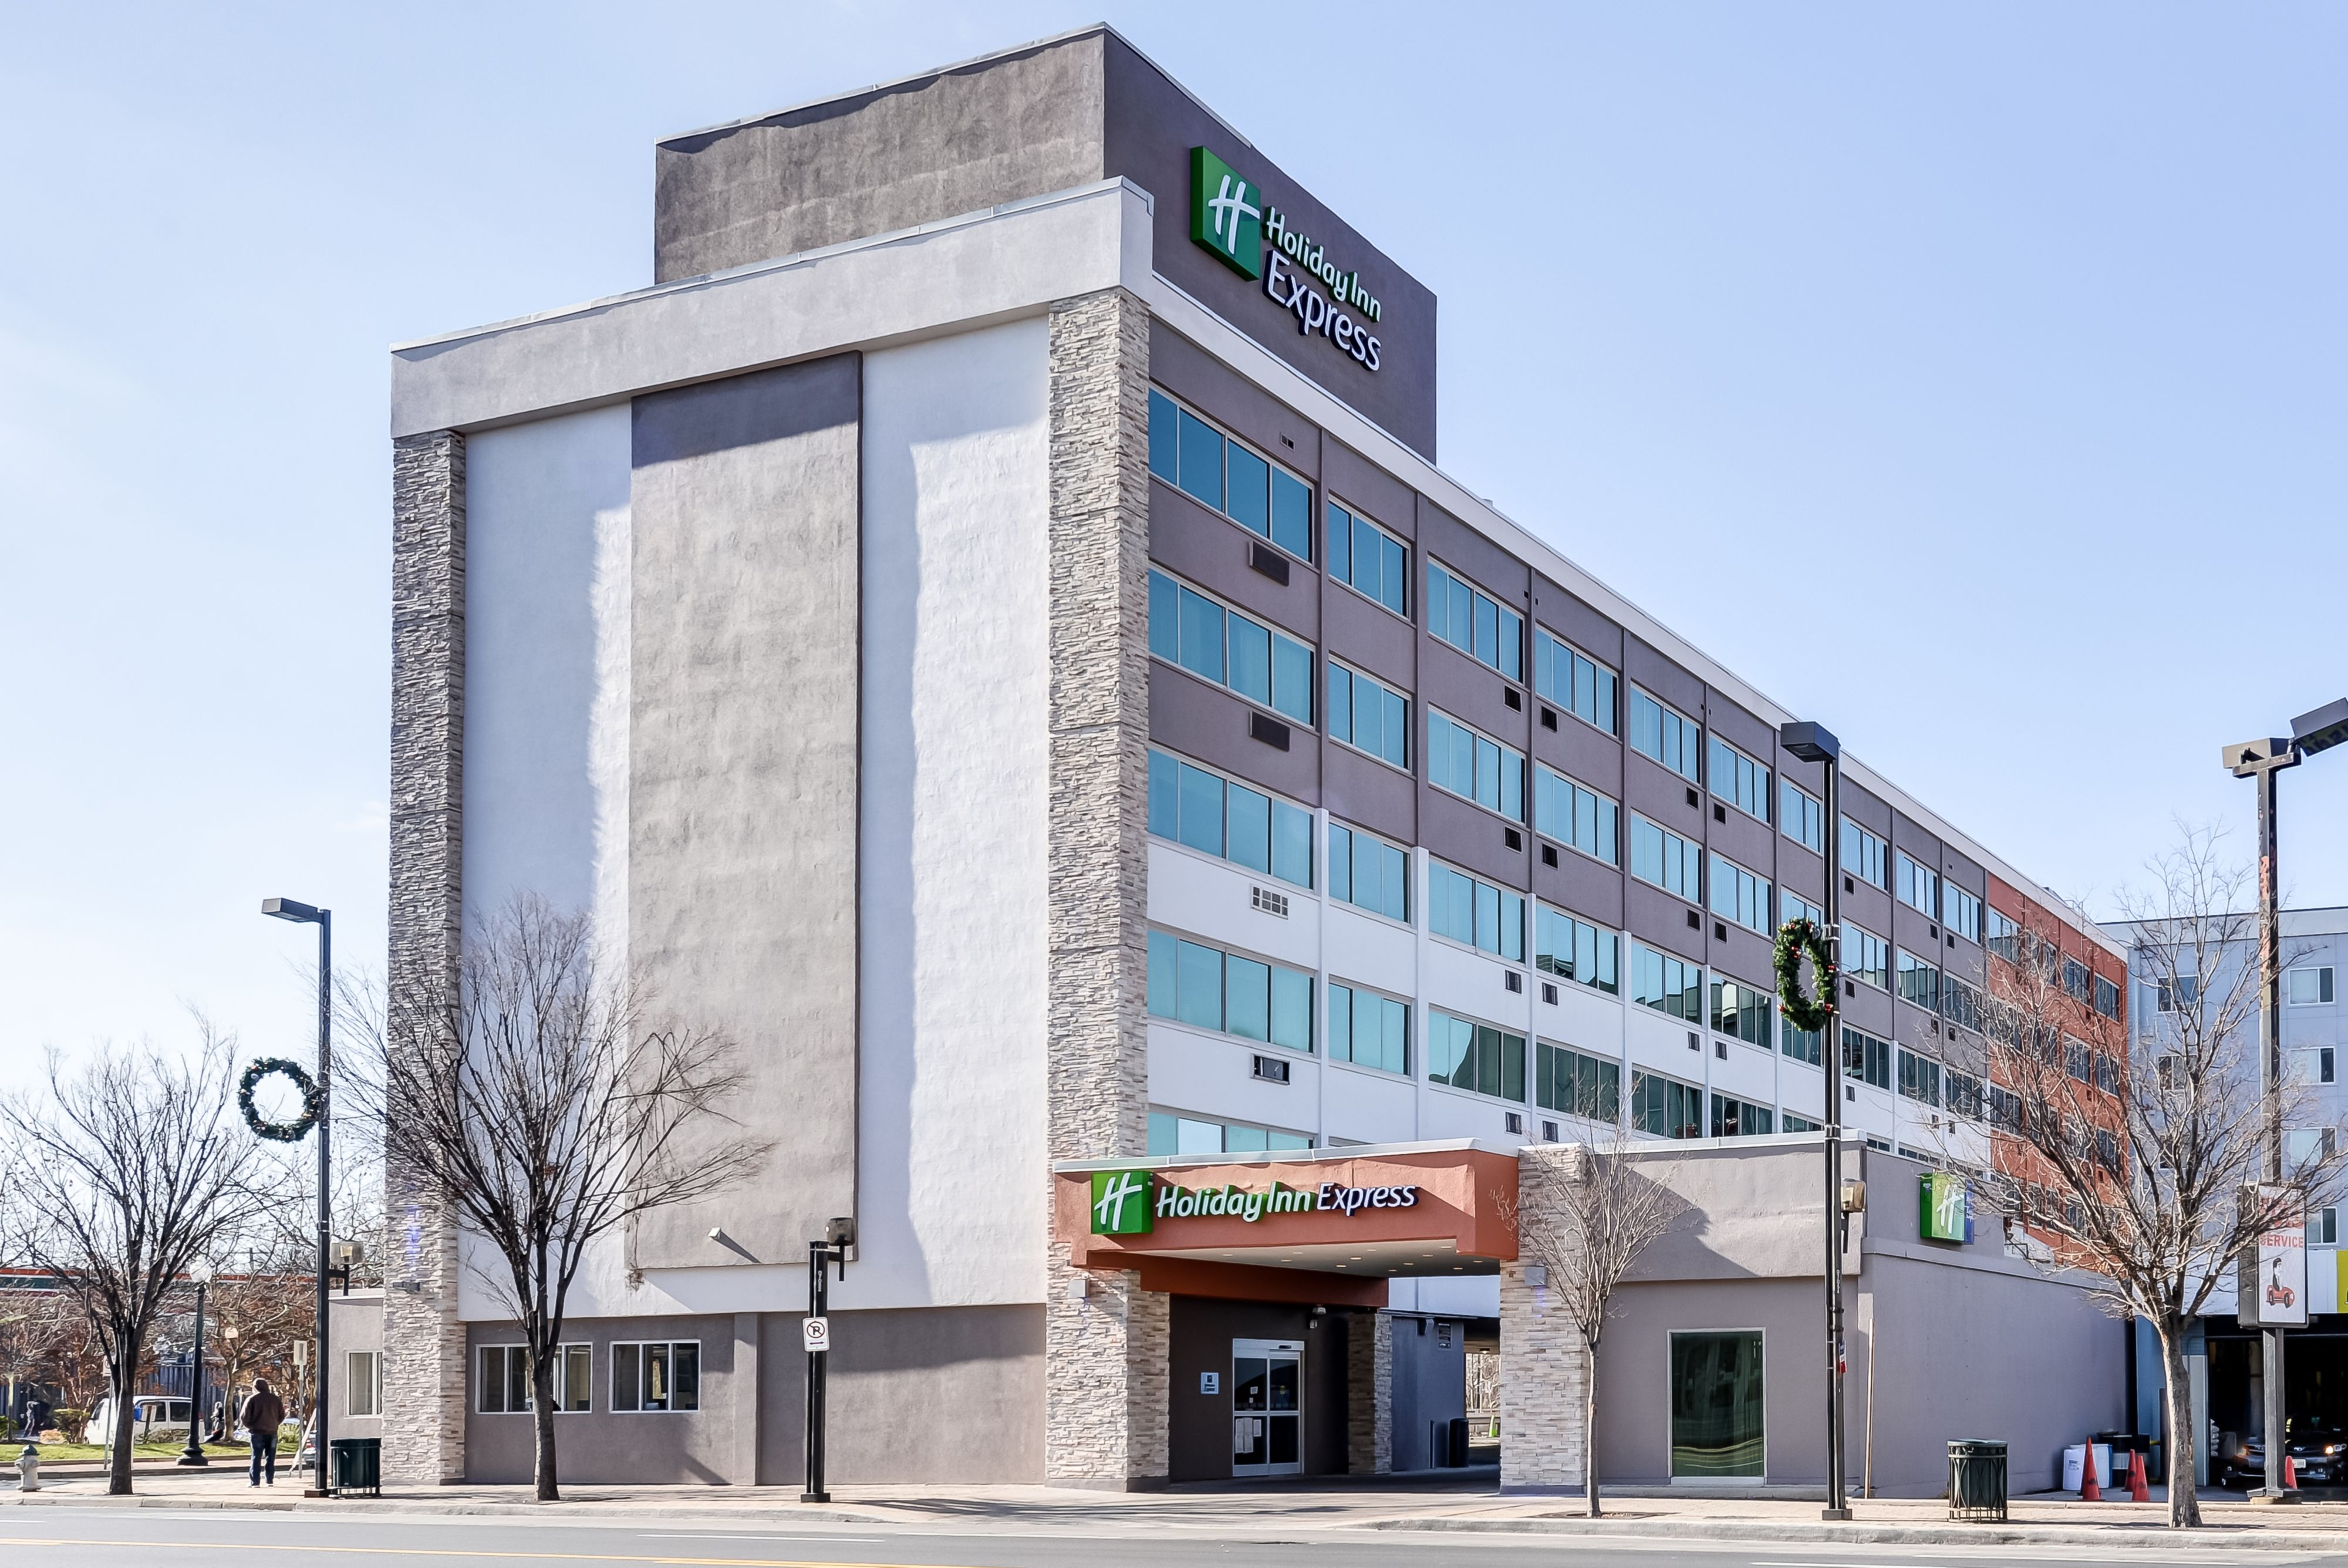 Holiday Inn Express & Suites Washington Dc Northeast image 3